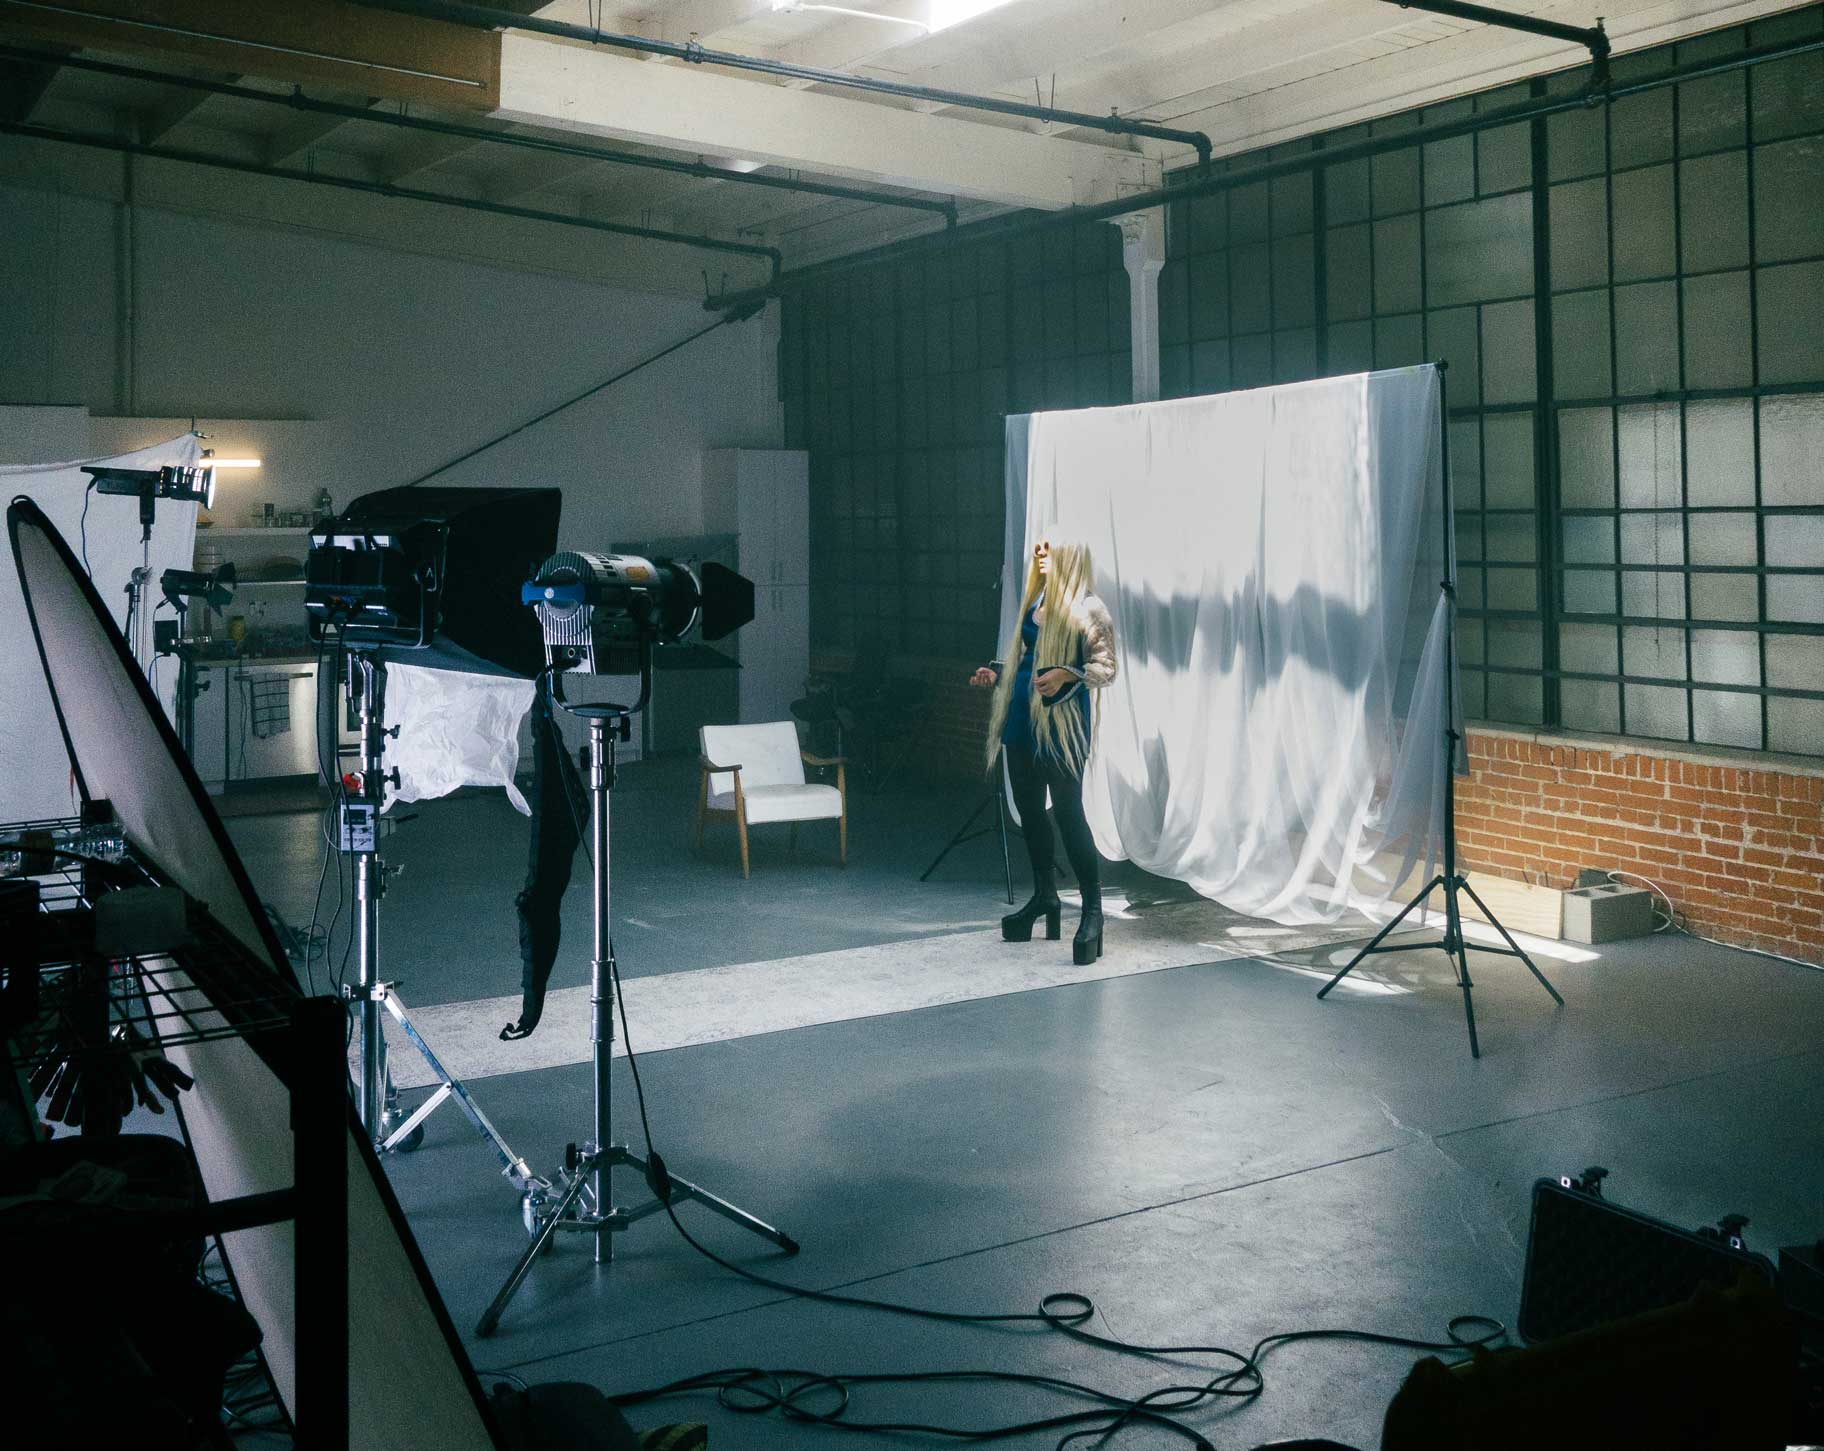 A behind the scenes shot of a past music video showing how lighting equipment can fit in the space.